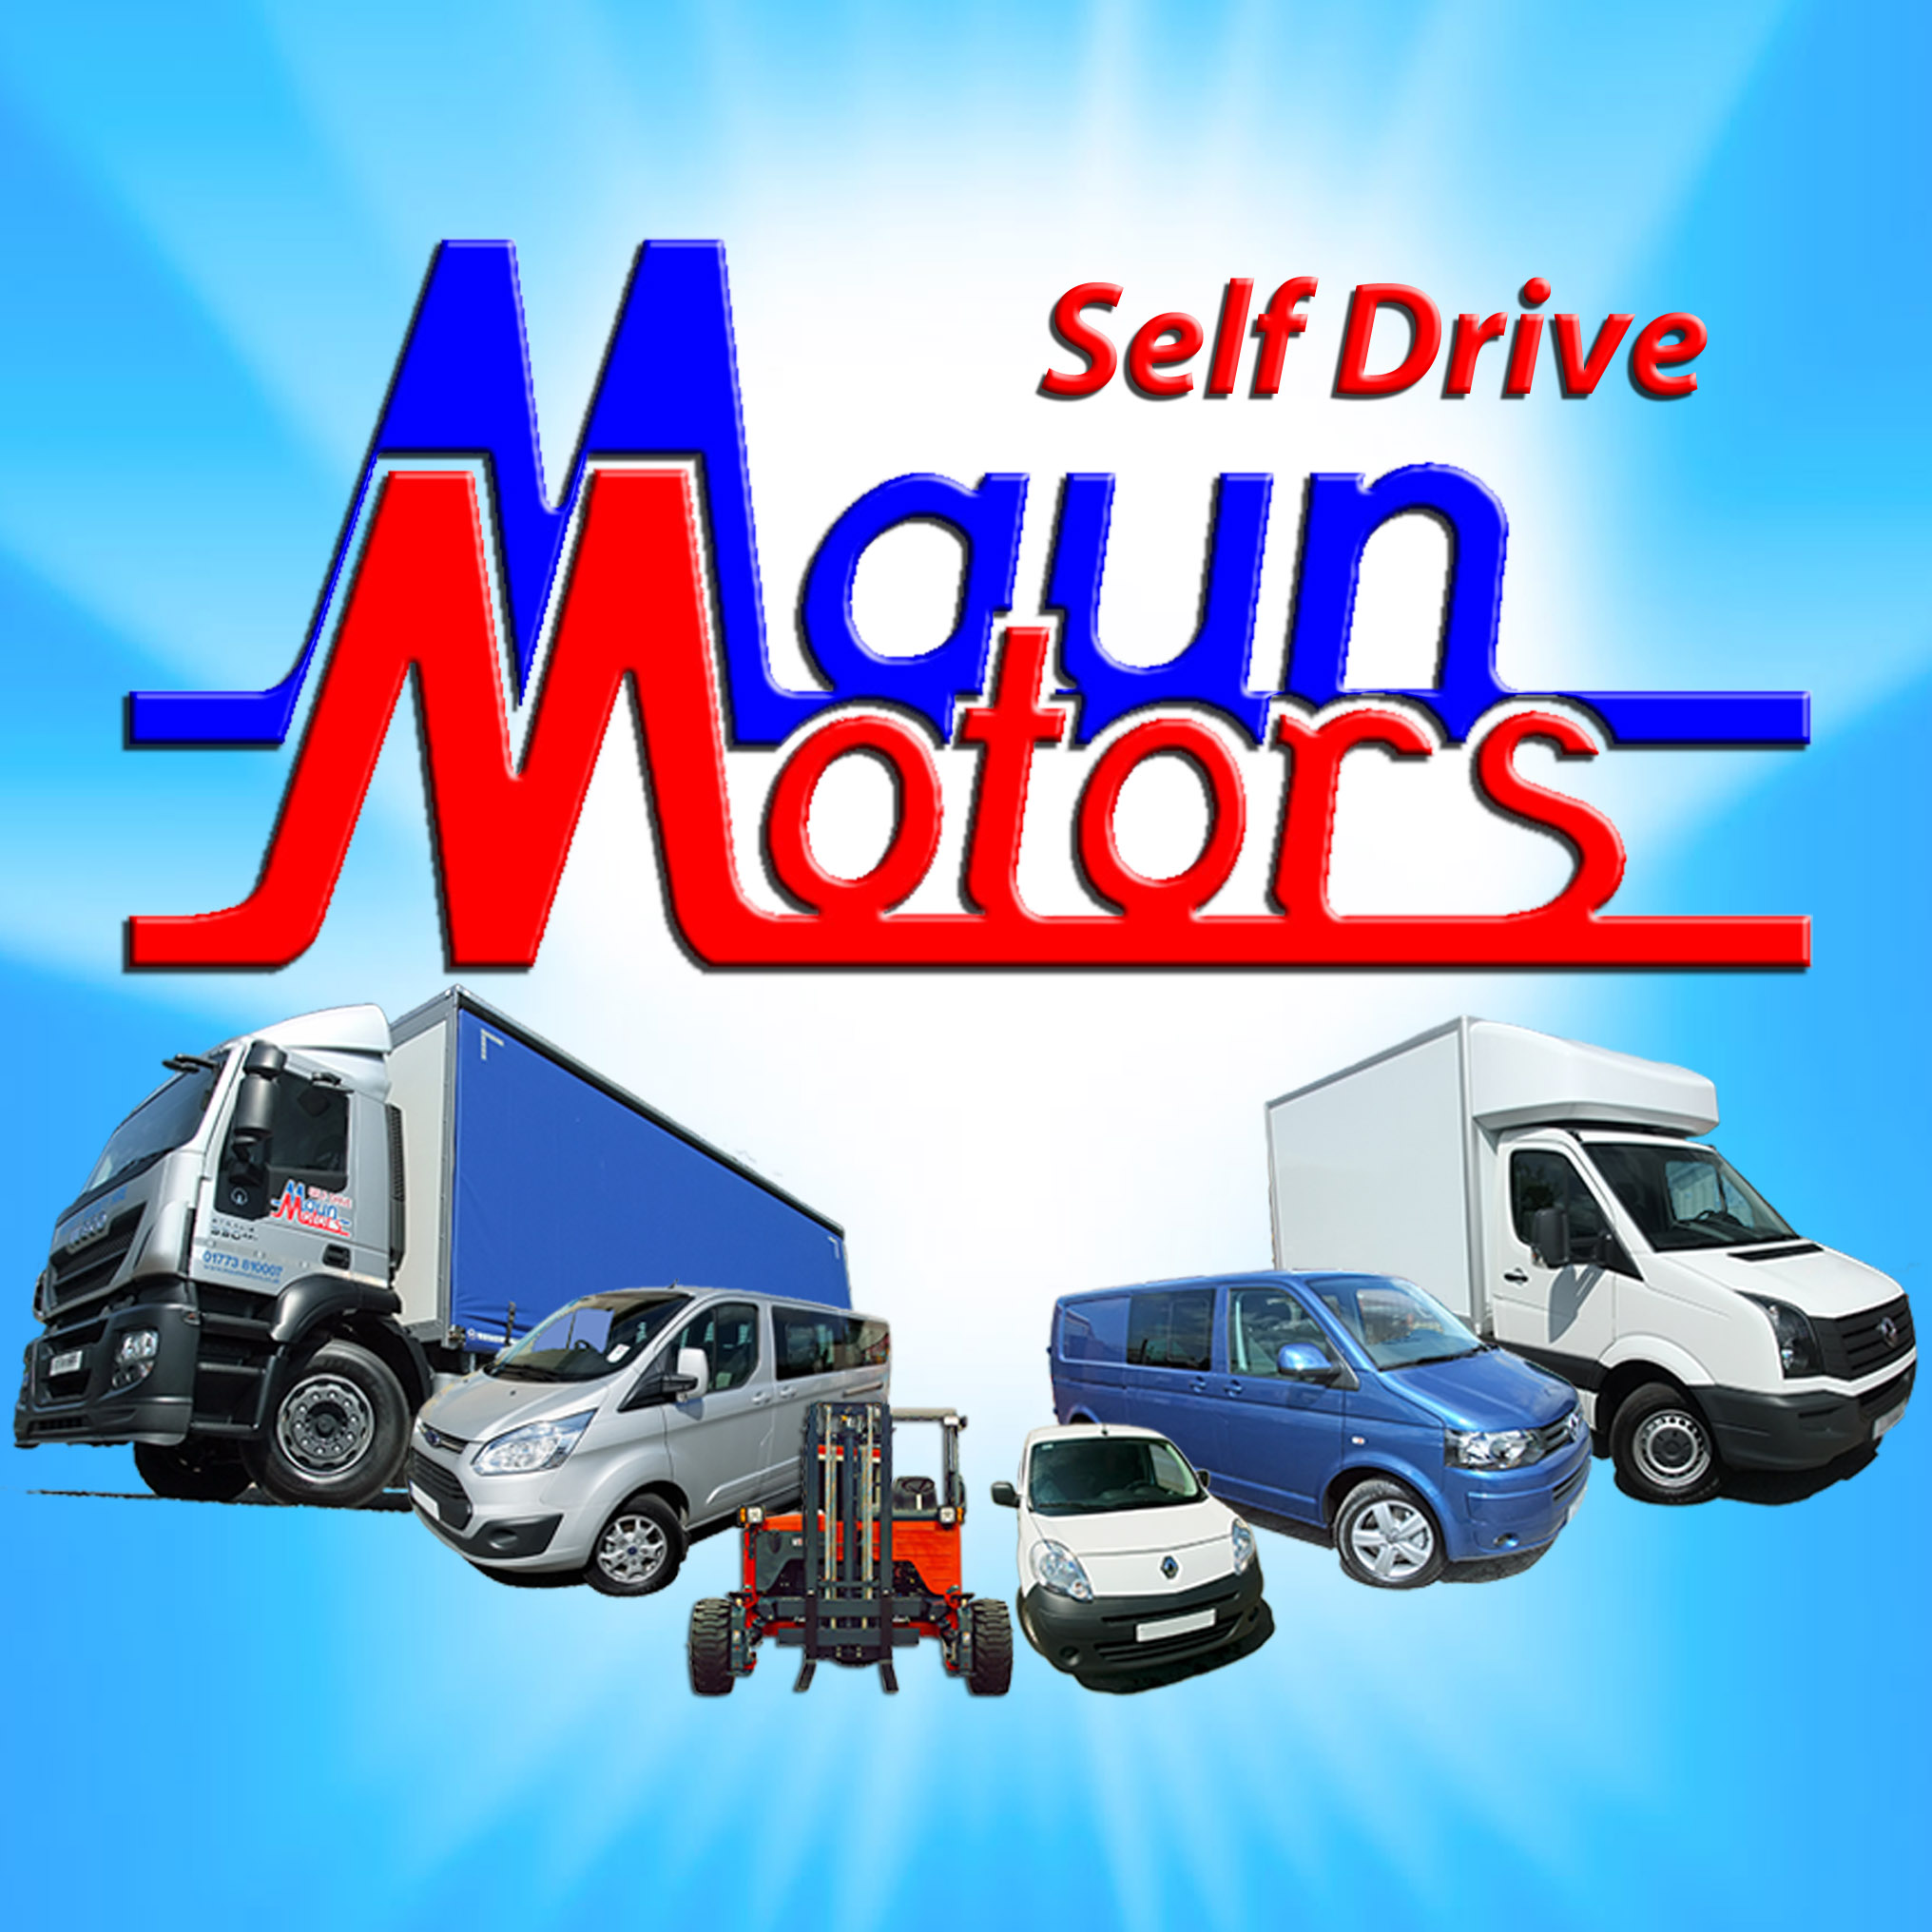 Maun Motors Self Drive